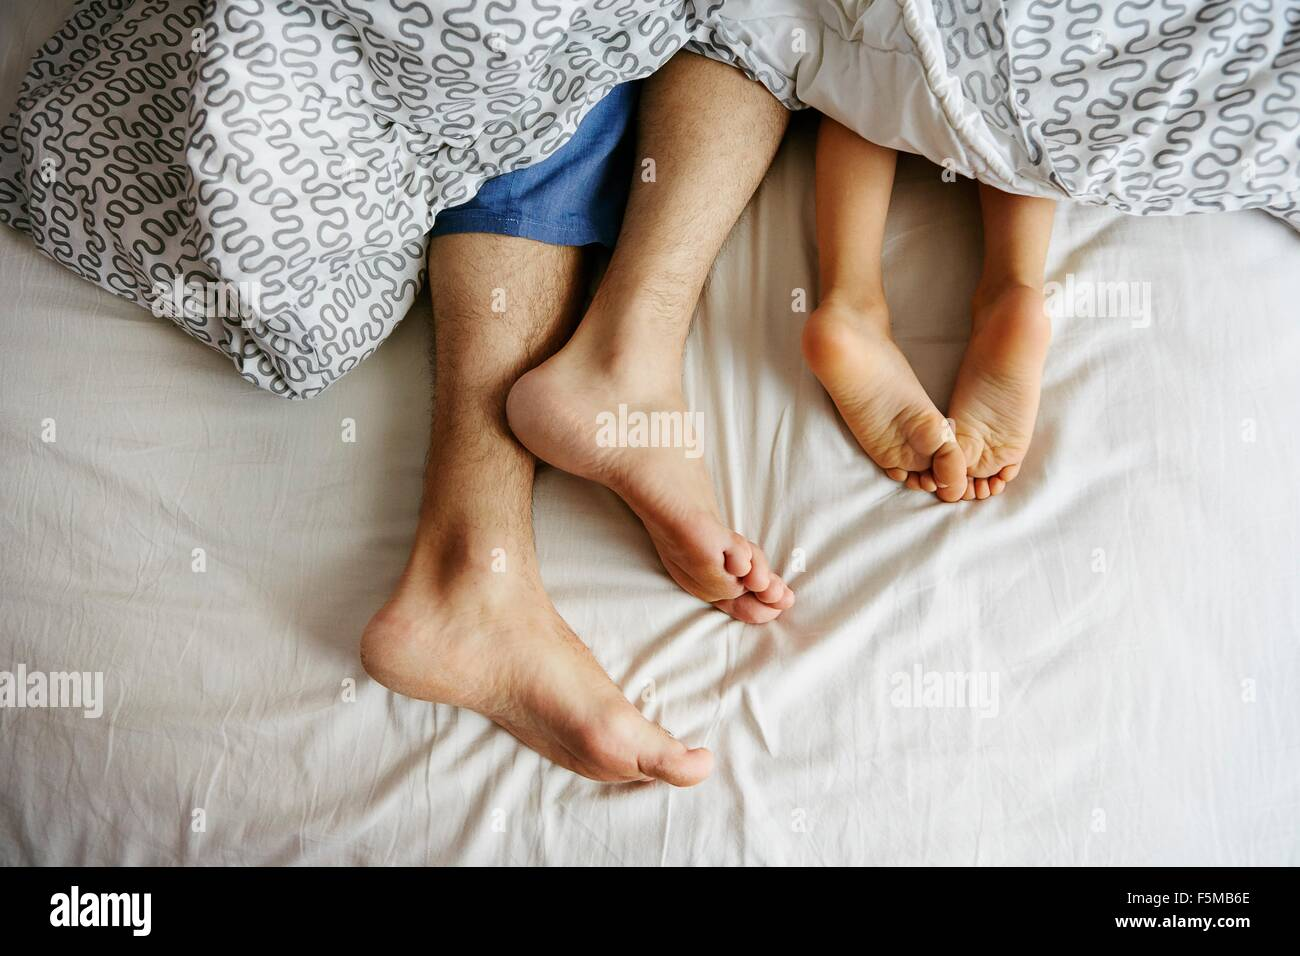 bare feet and legs of father and young son lying in bed